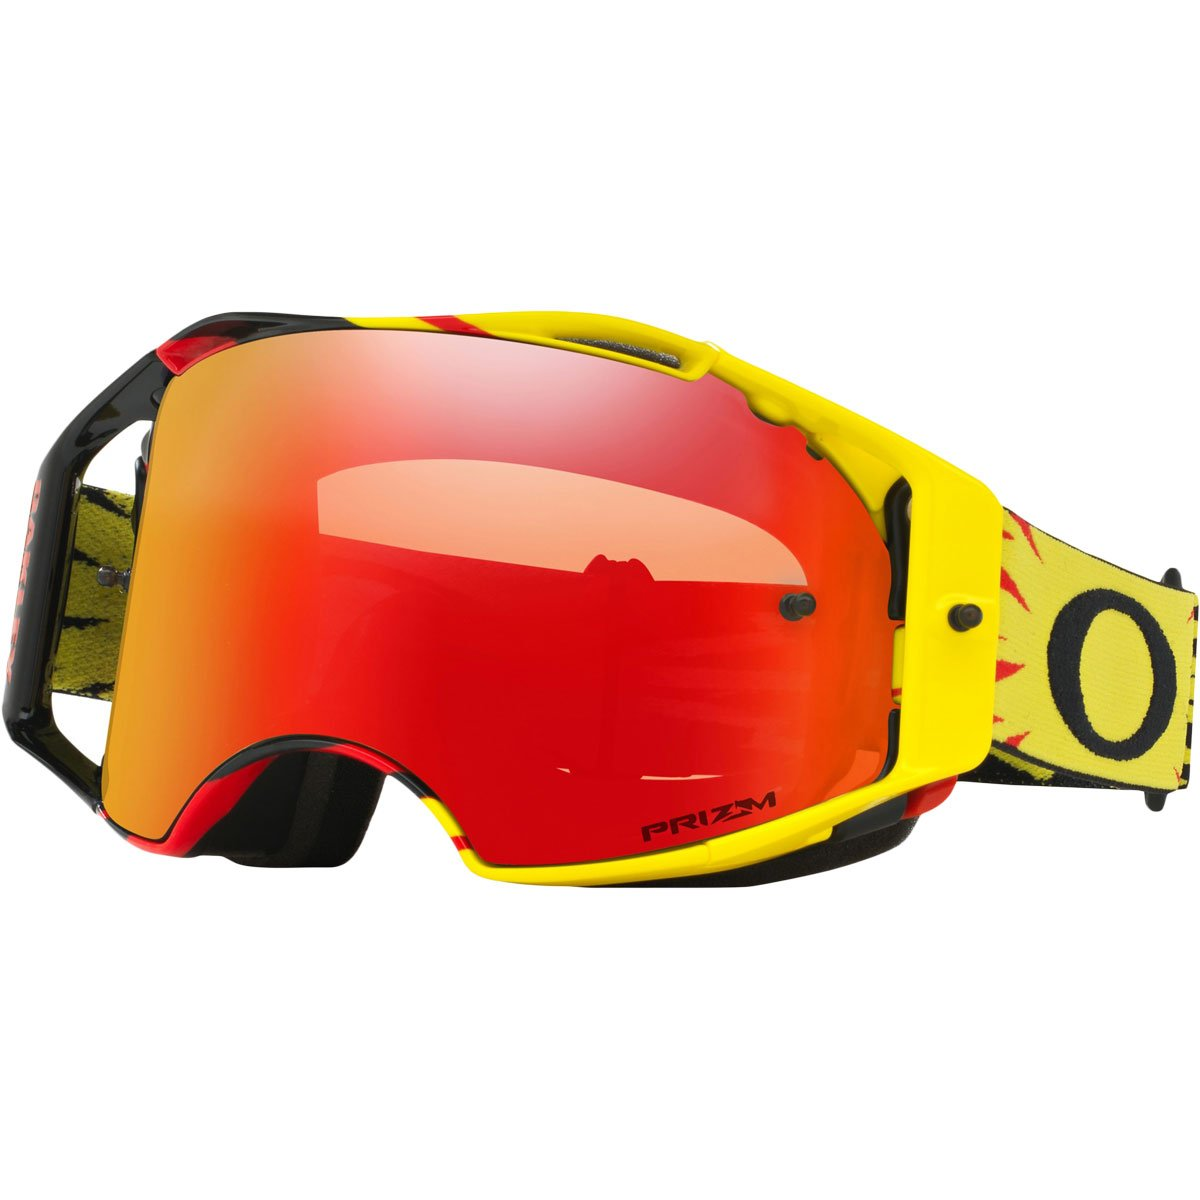 Oakley ABMX HighVoltage YelRed with Prizm MX Torch unisex-adult Goggles (Red, Medium), 1 Pack